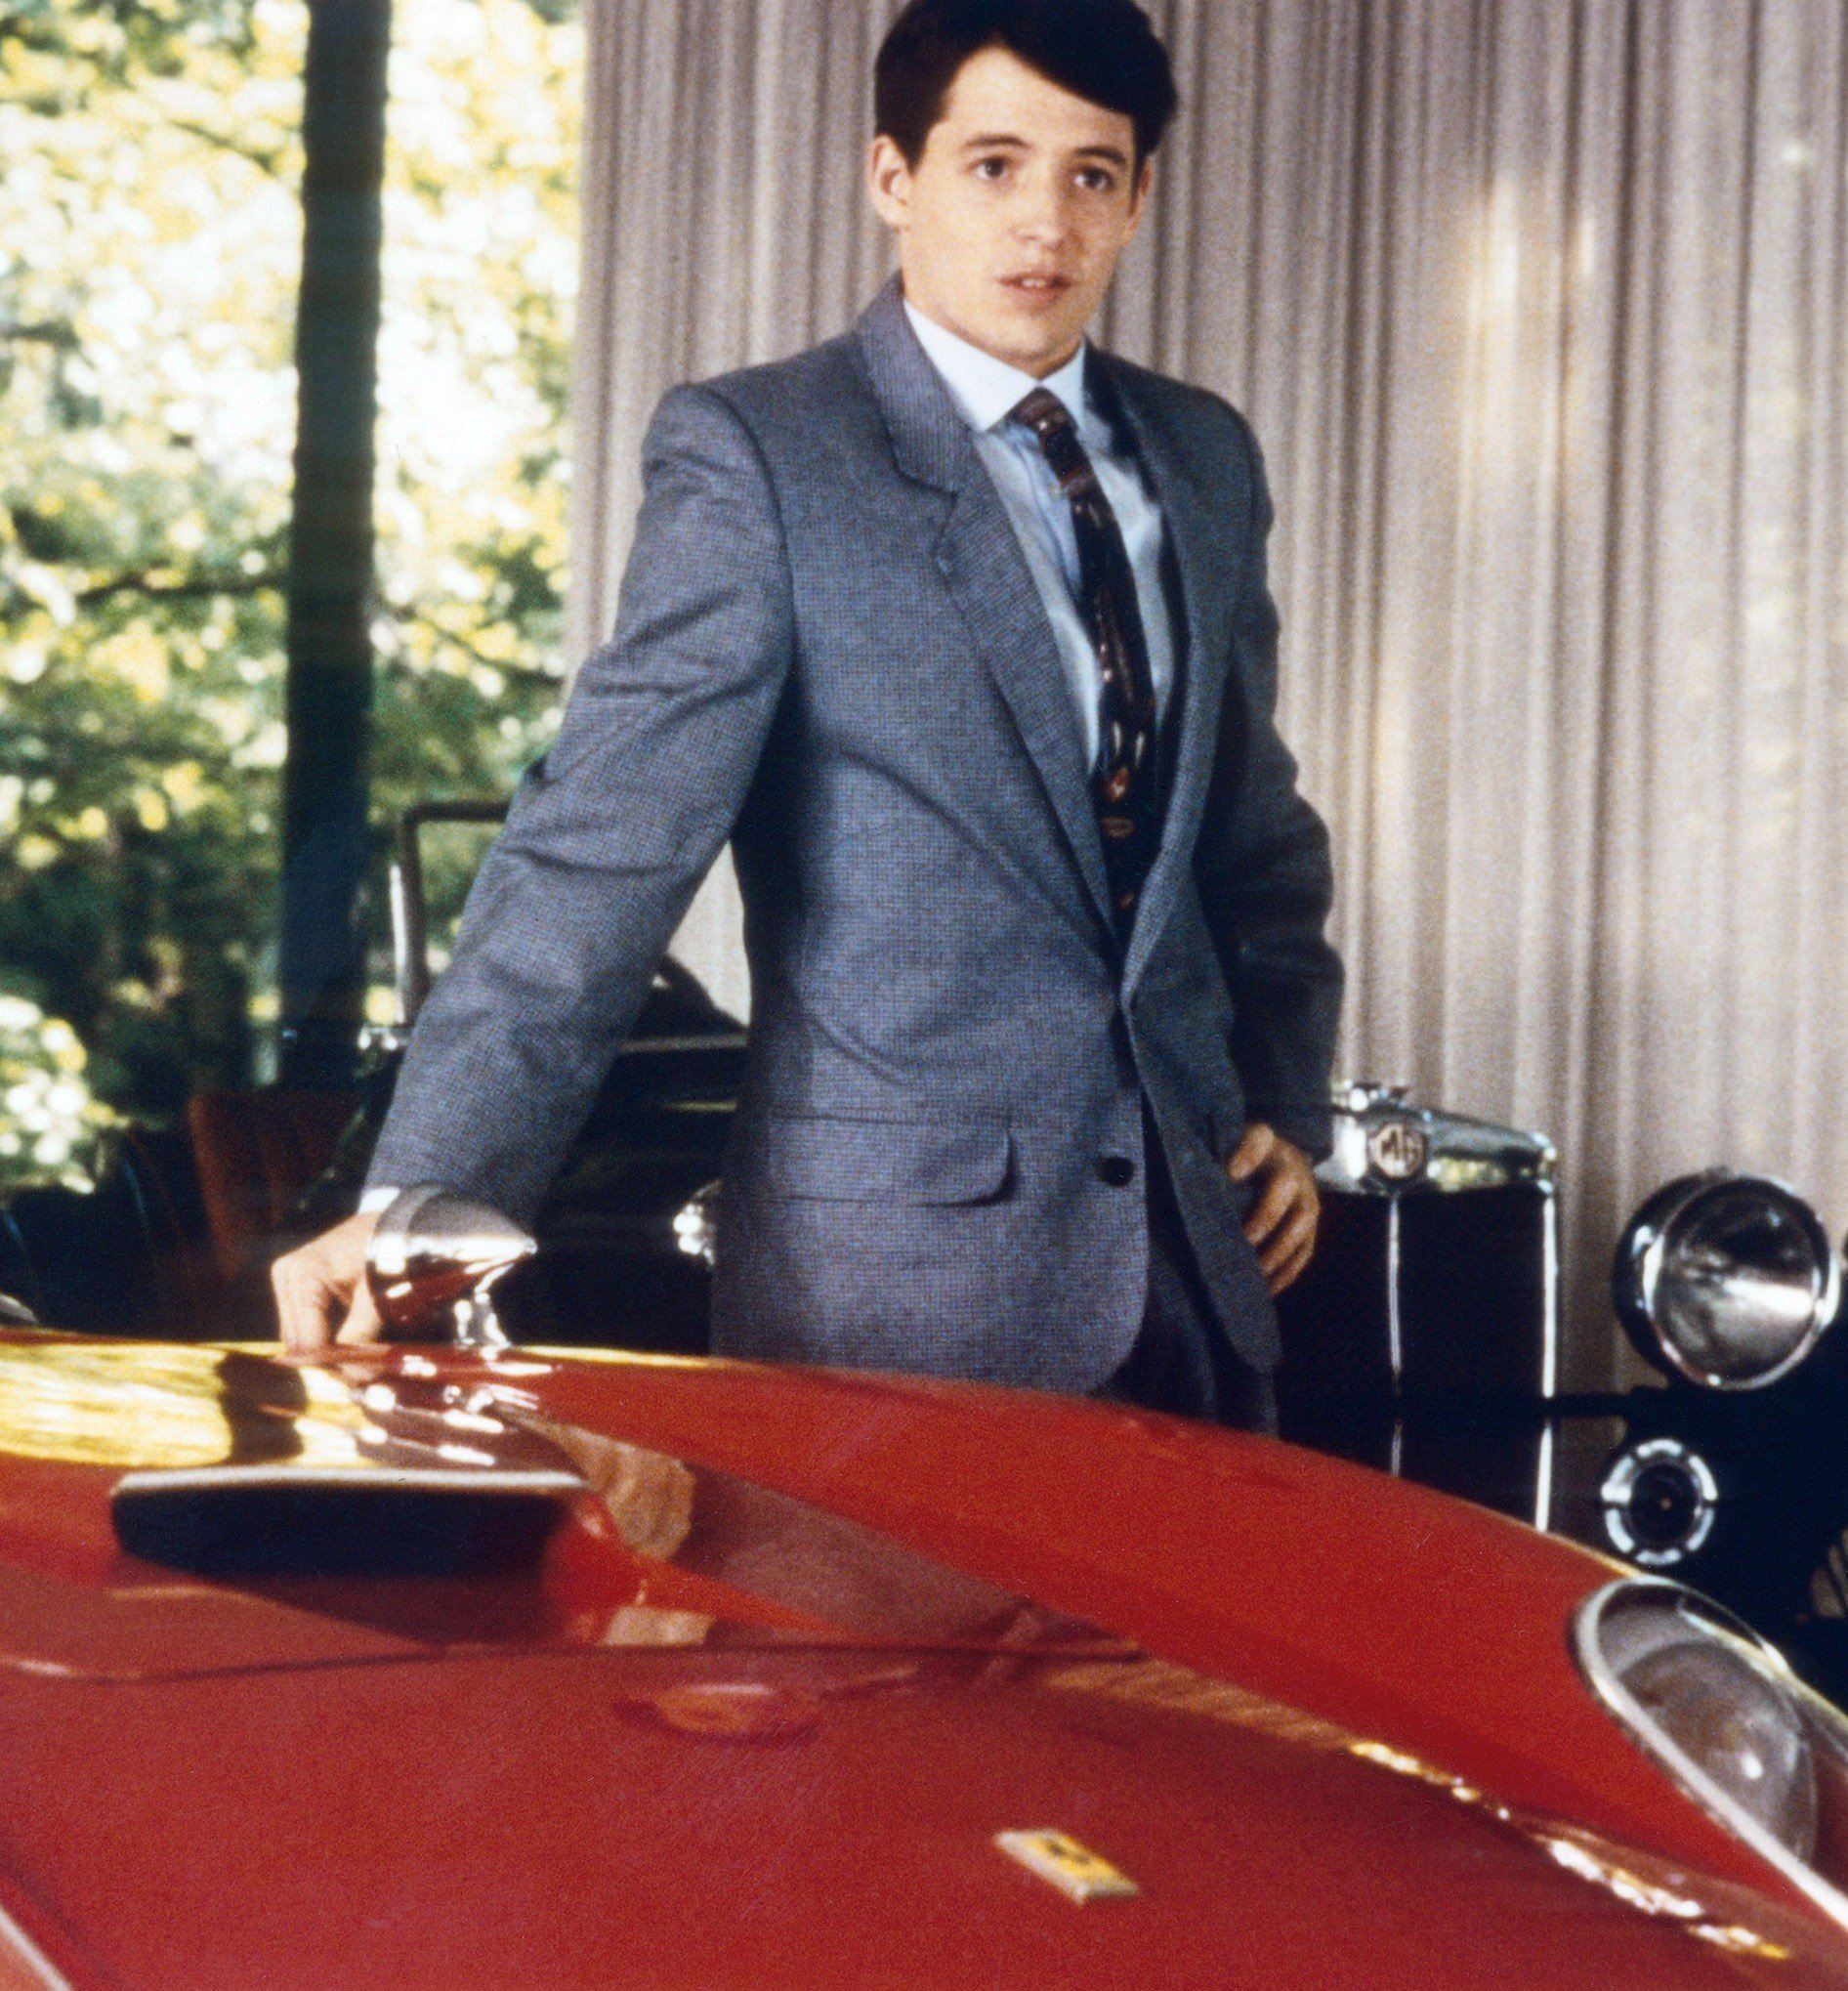 m8dfebu ec004 h 2535f84d 2ace 40fa 8de2 c47966b0b791 20 Things You Probably Didn't Know About Ferris Bueller's Day Off